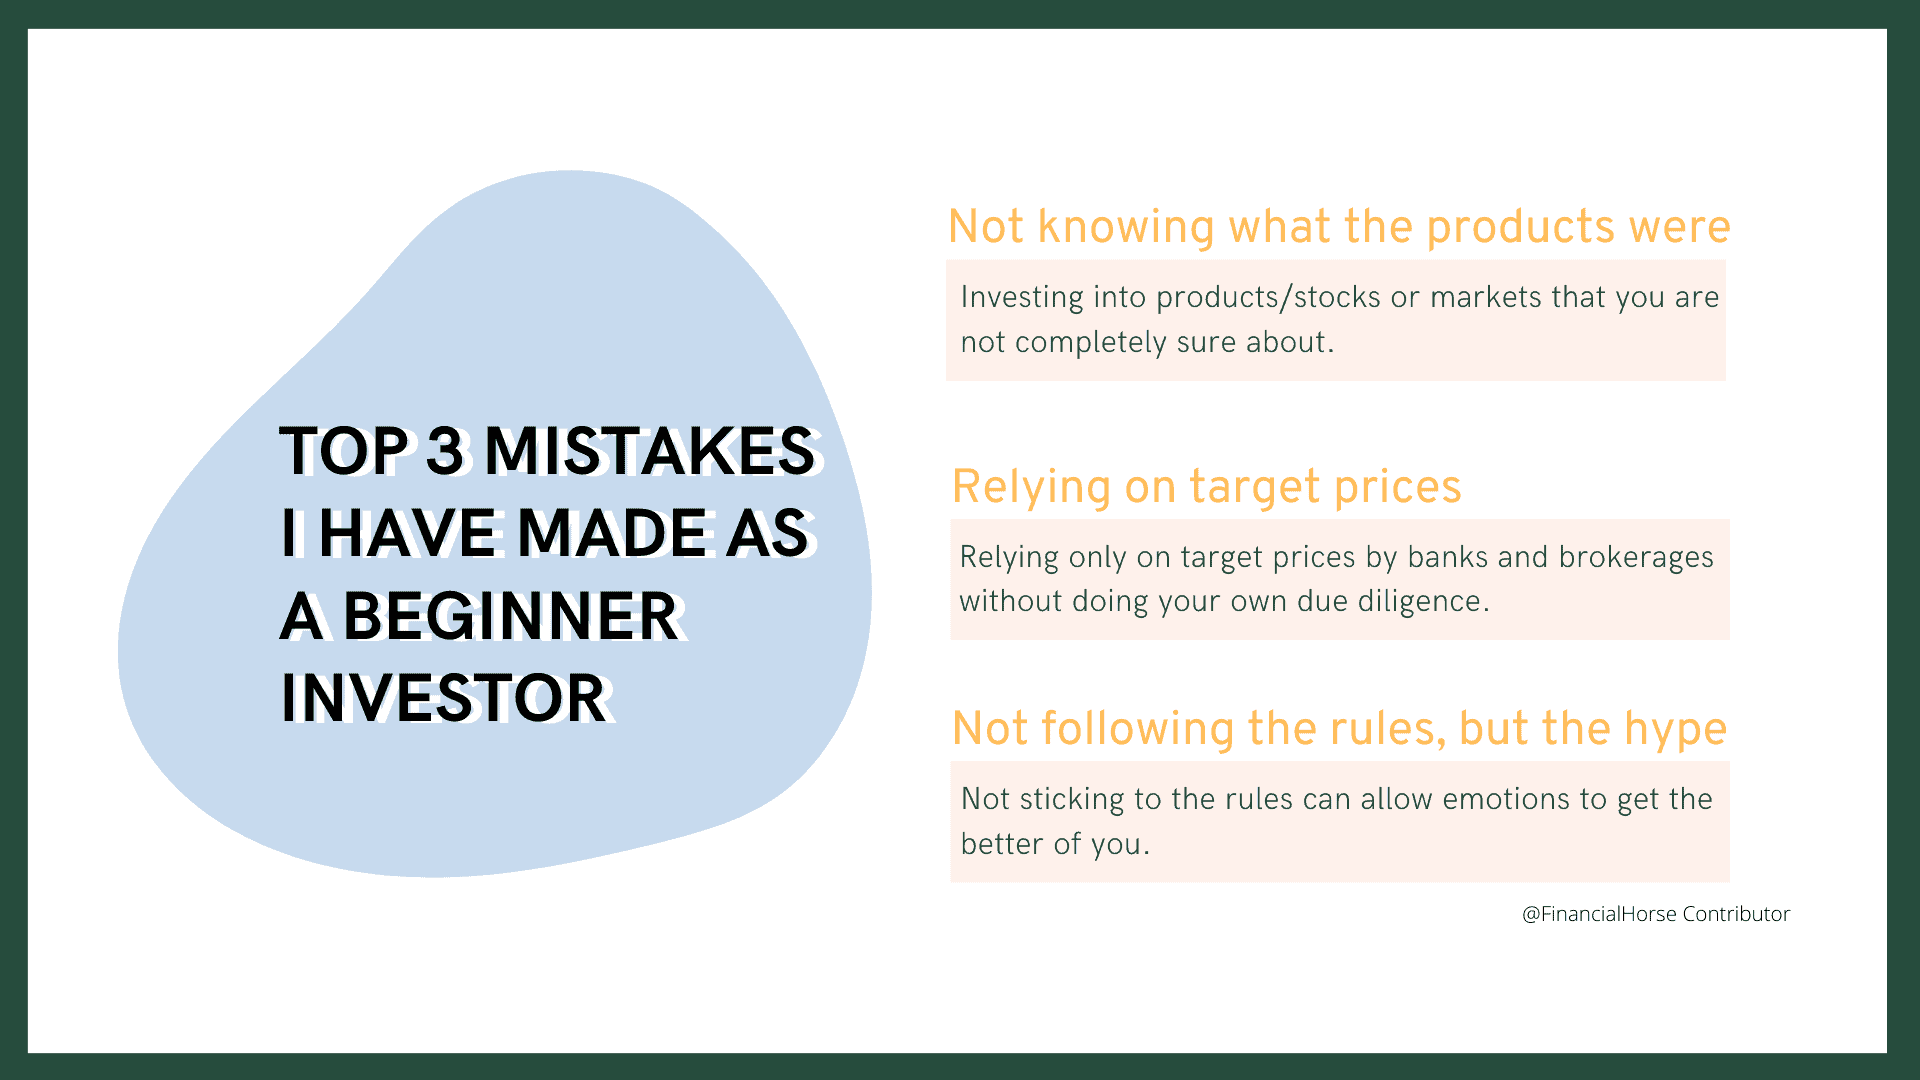 Top 3 Mistakes I've made as a Beginner Investor